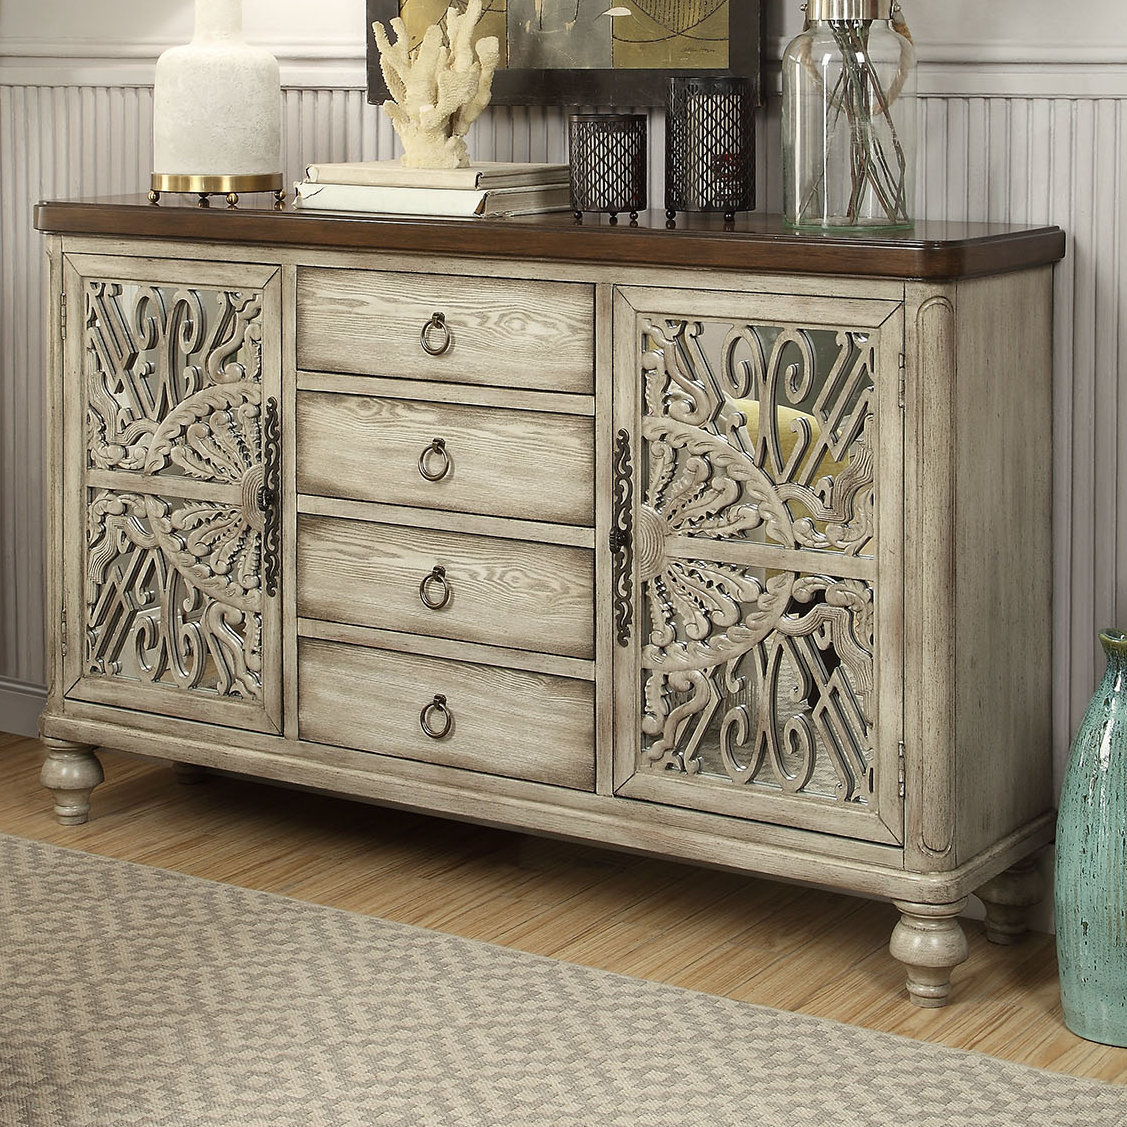 Inspiration about Dillen Sideboard & Reviews | Joss & Main Throughout Most Current Dillen Sideboards (#1 of 20)